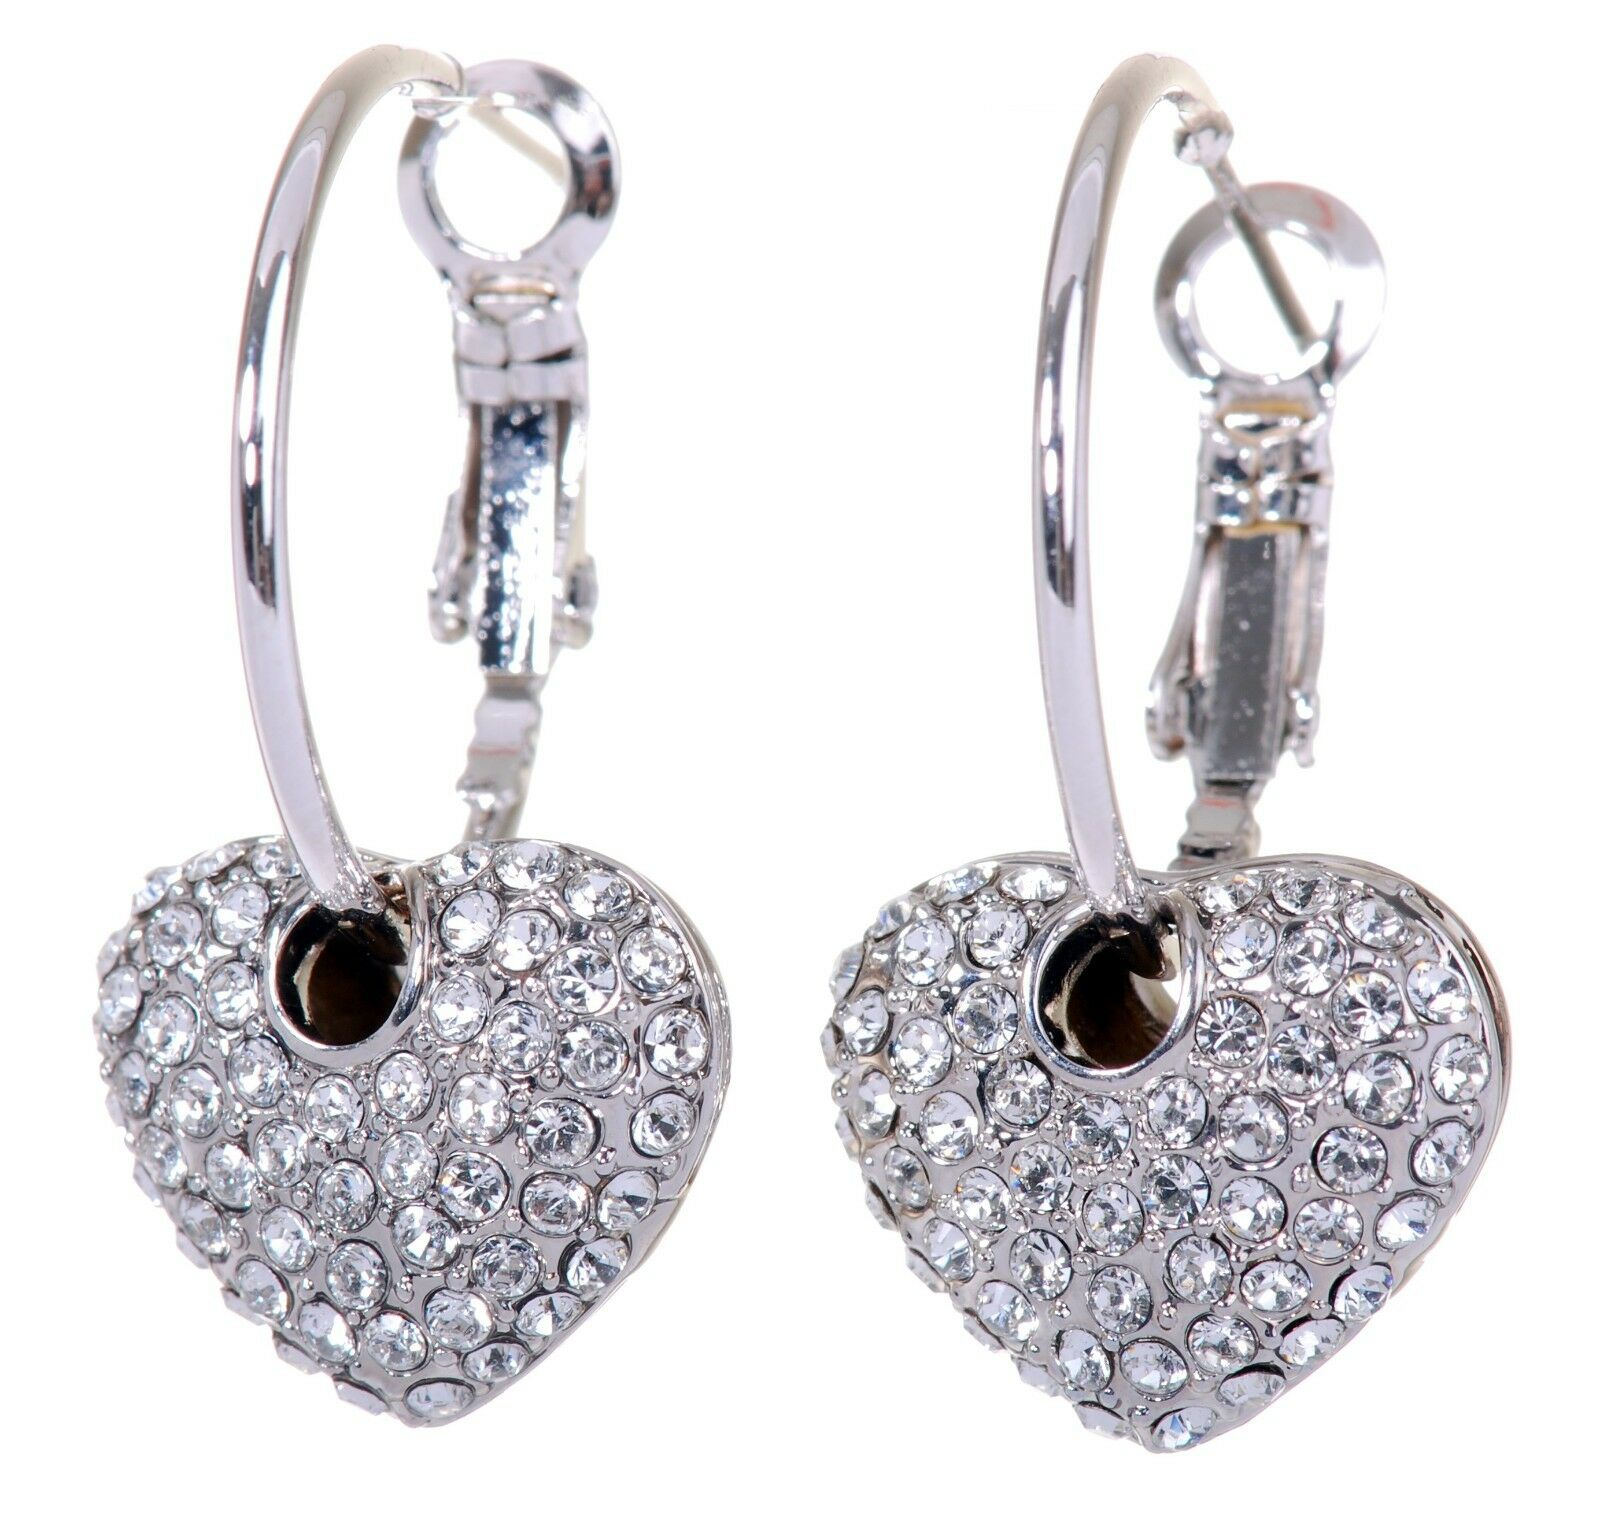 Swarovski Elements Crystal Starlet Puffed Heart Earrings Rhodium Authentic 7116u